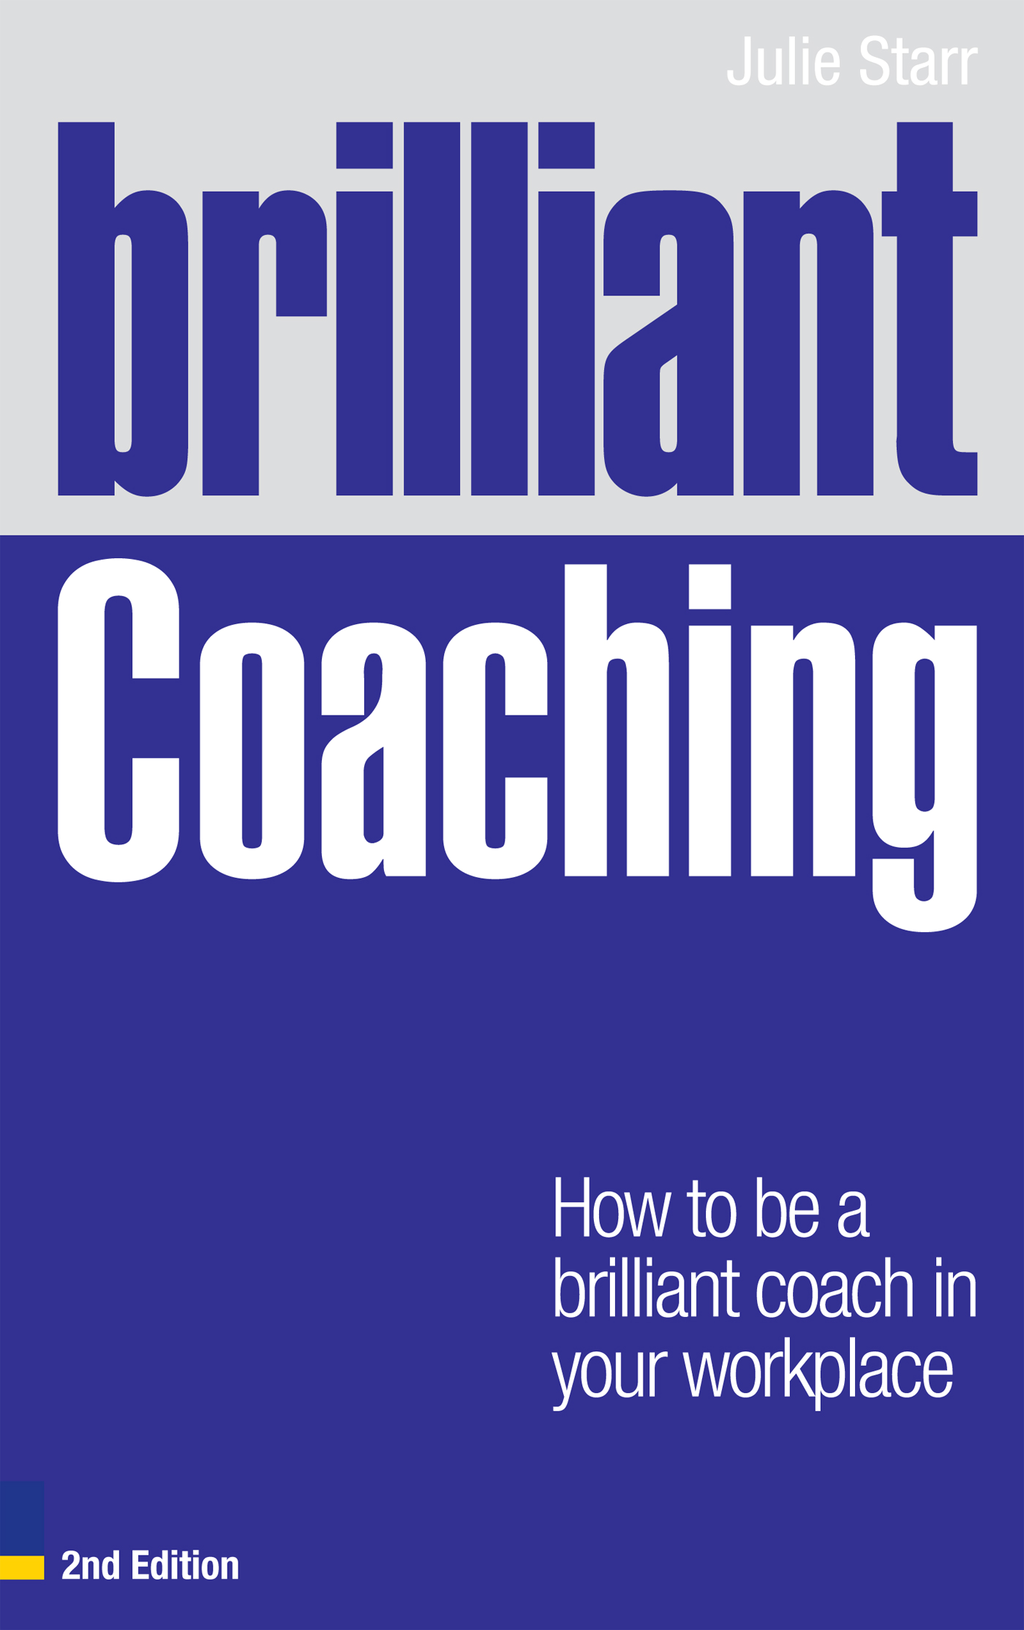 Brilliant Coaching 2e How to be a brilliant coach in your workplace